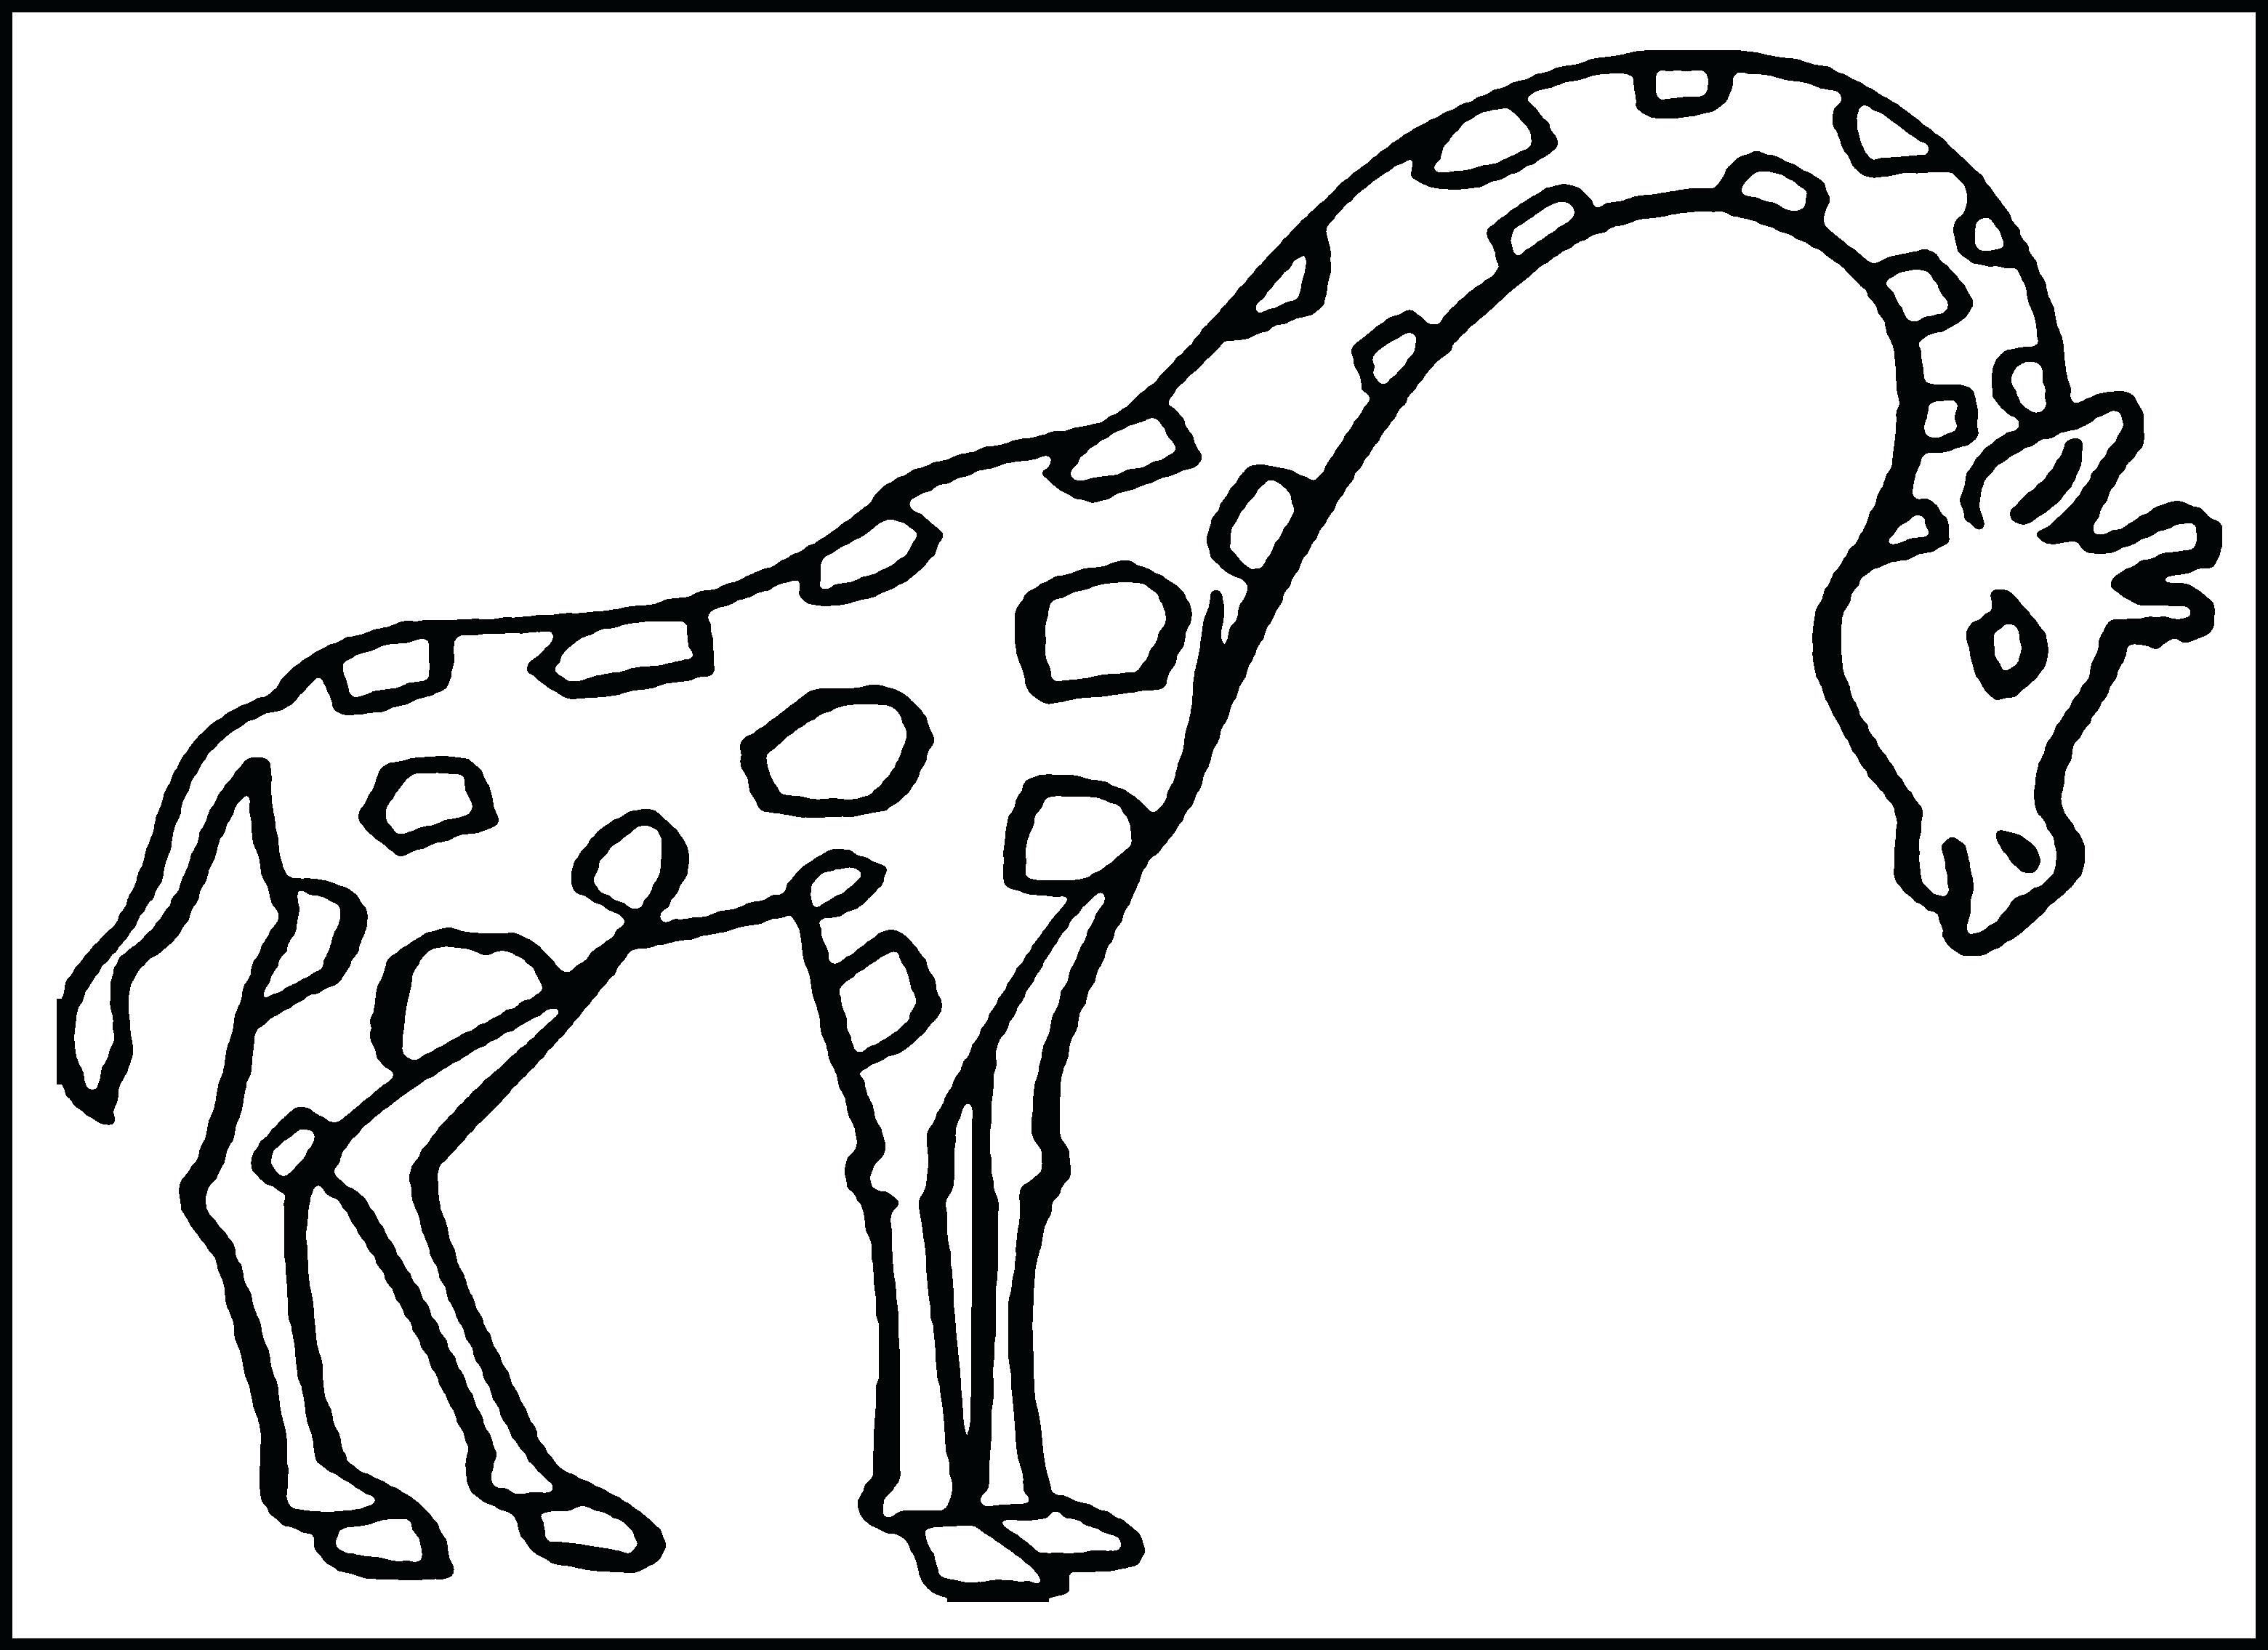 3120x2270 Coloring Pages For Boys Gumball Overlay Run Page Giraffe Running